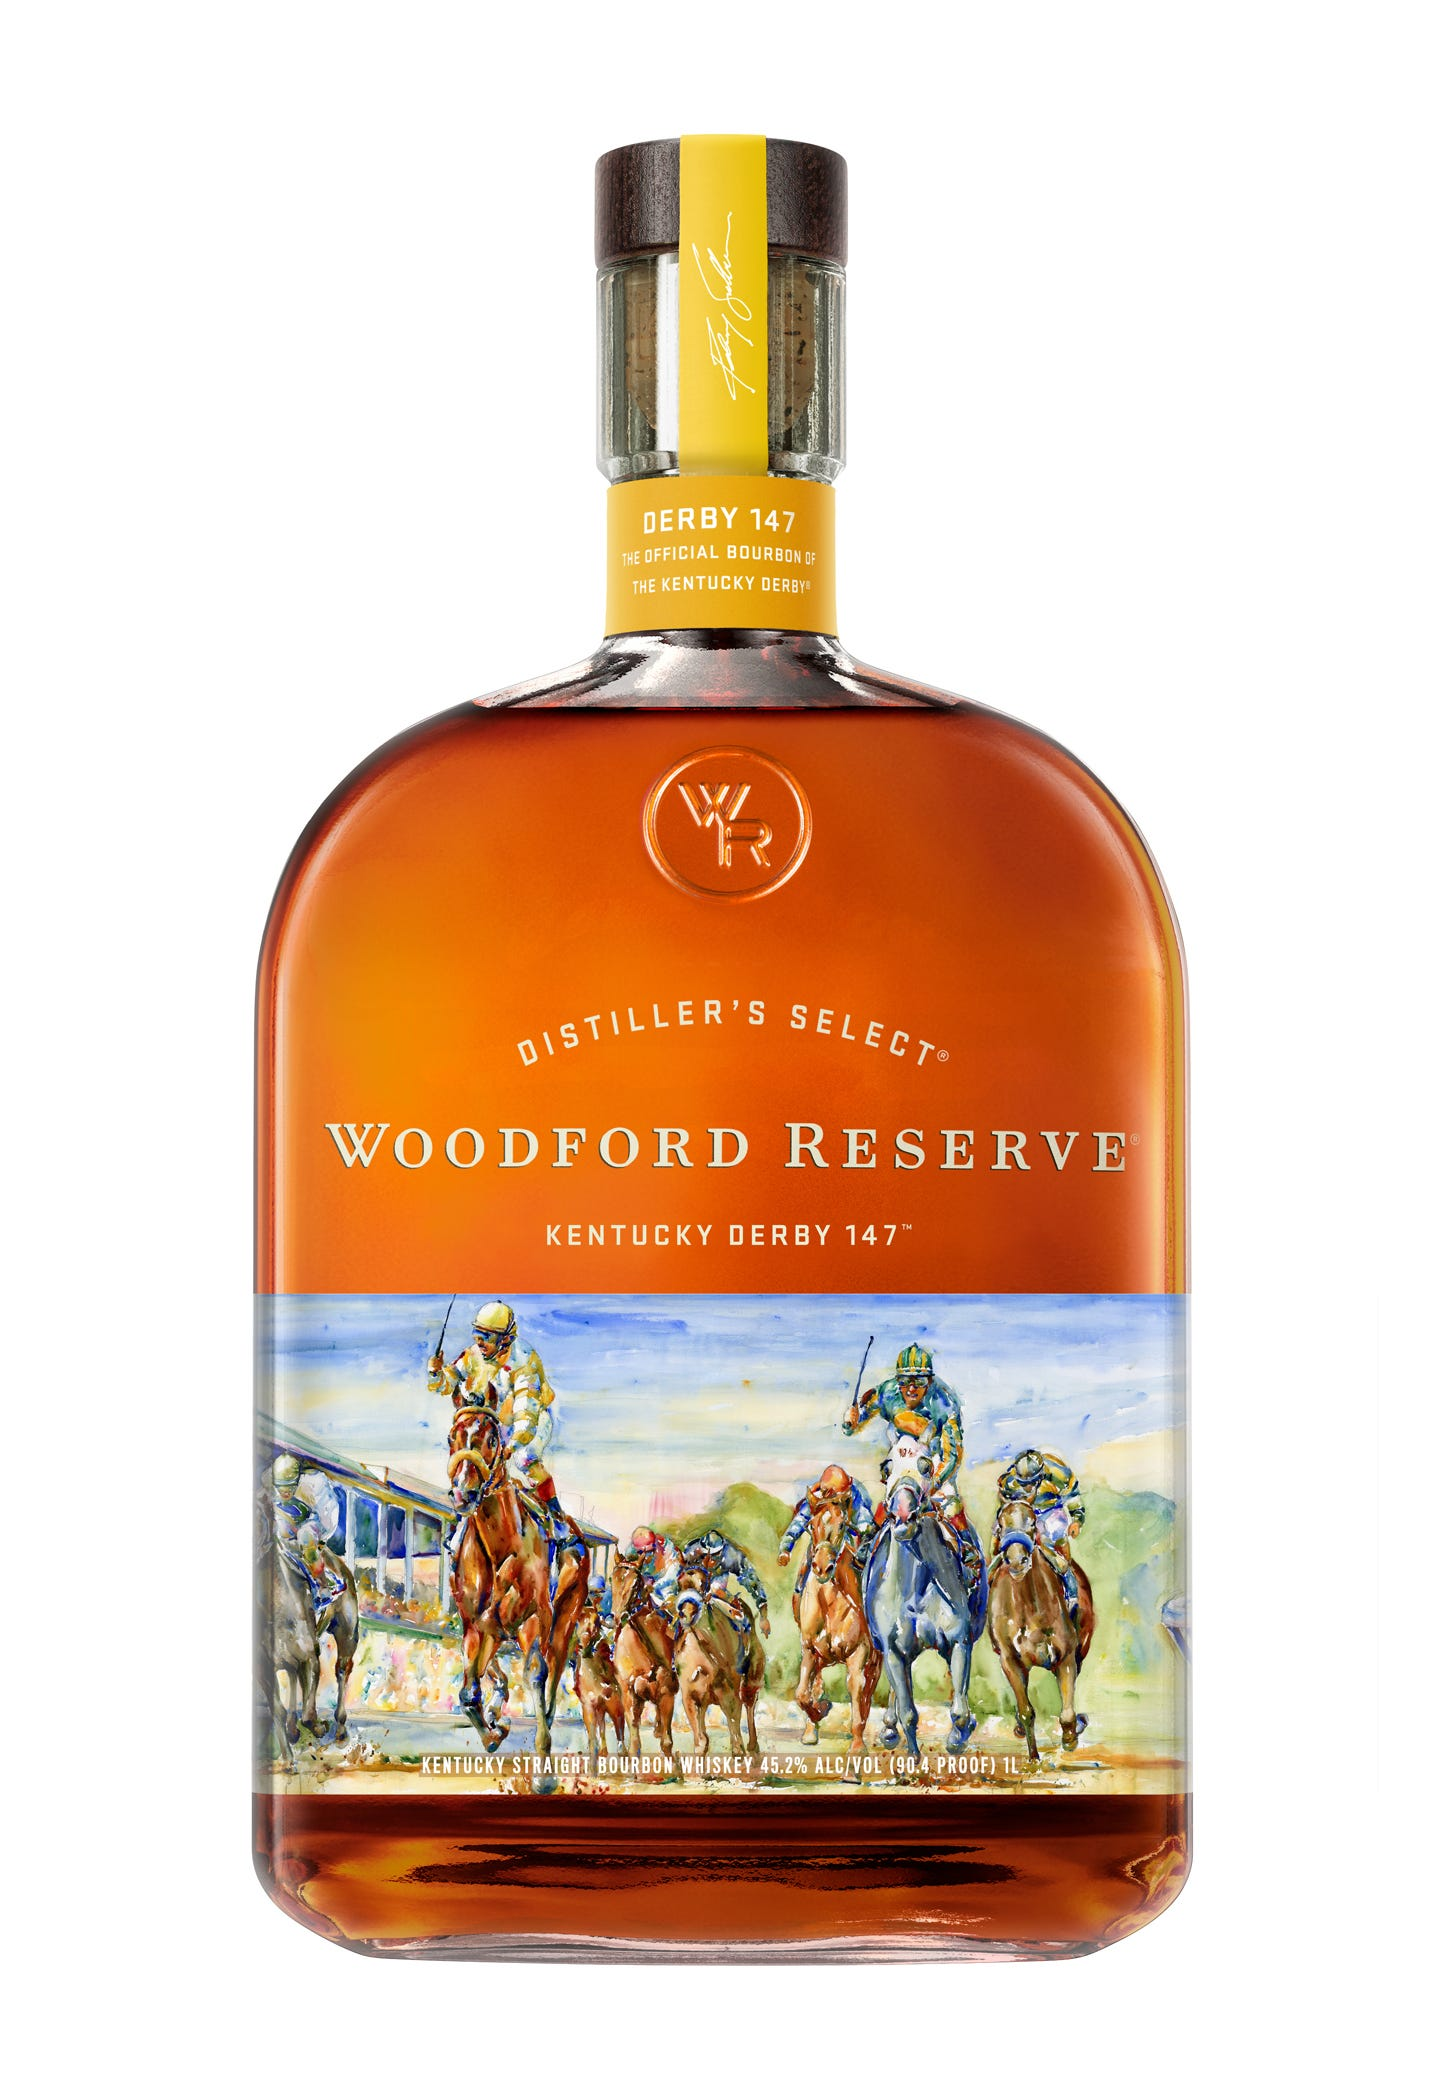 Woodford Reserve releases 25 Kentucky Derby bottle See it